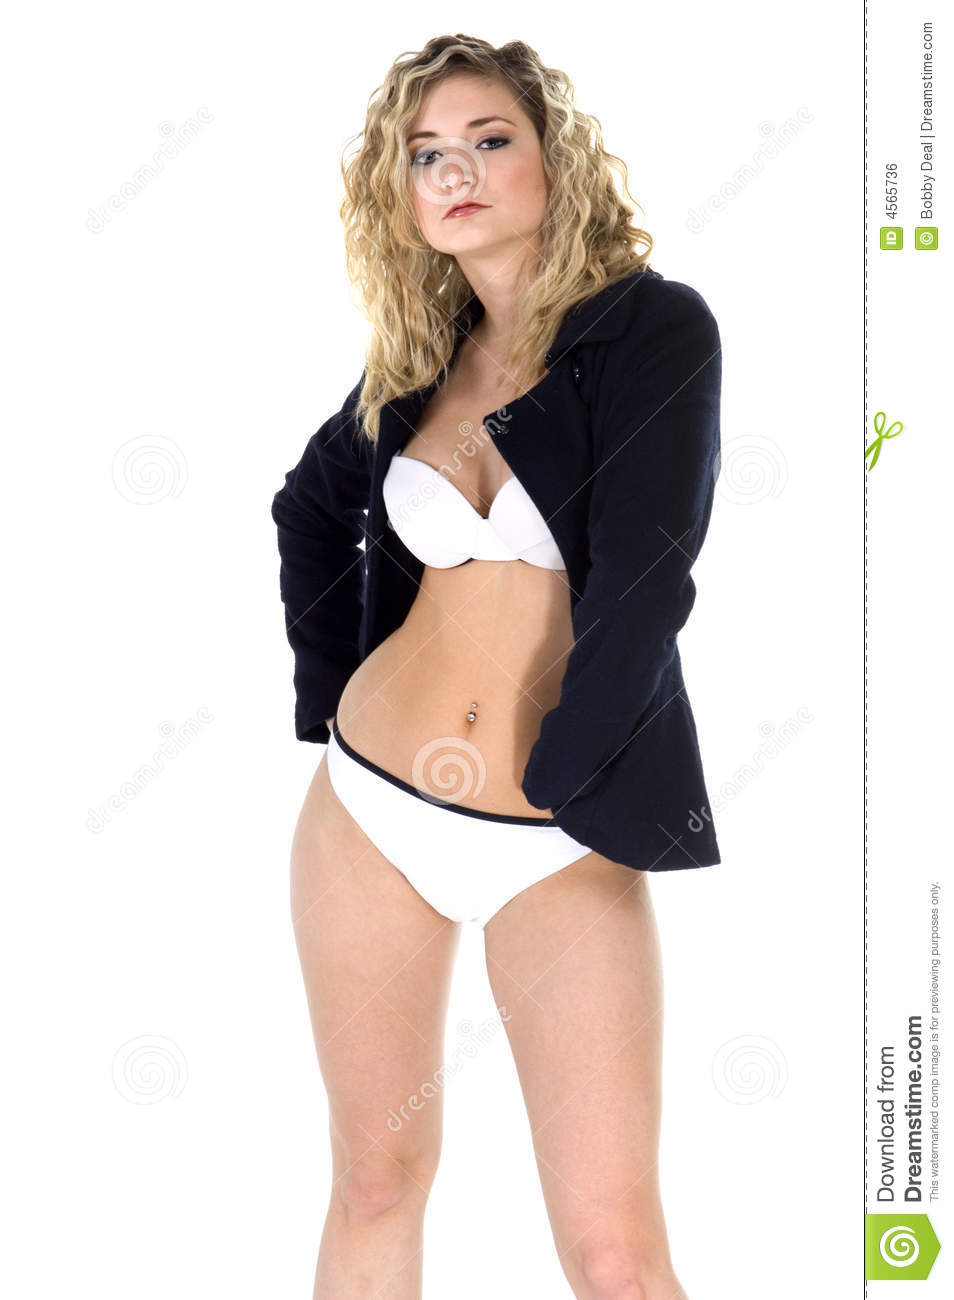 Bikini Pea Coat Royalty Free Stock Image